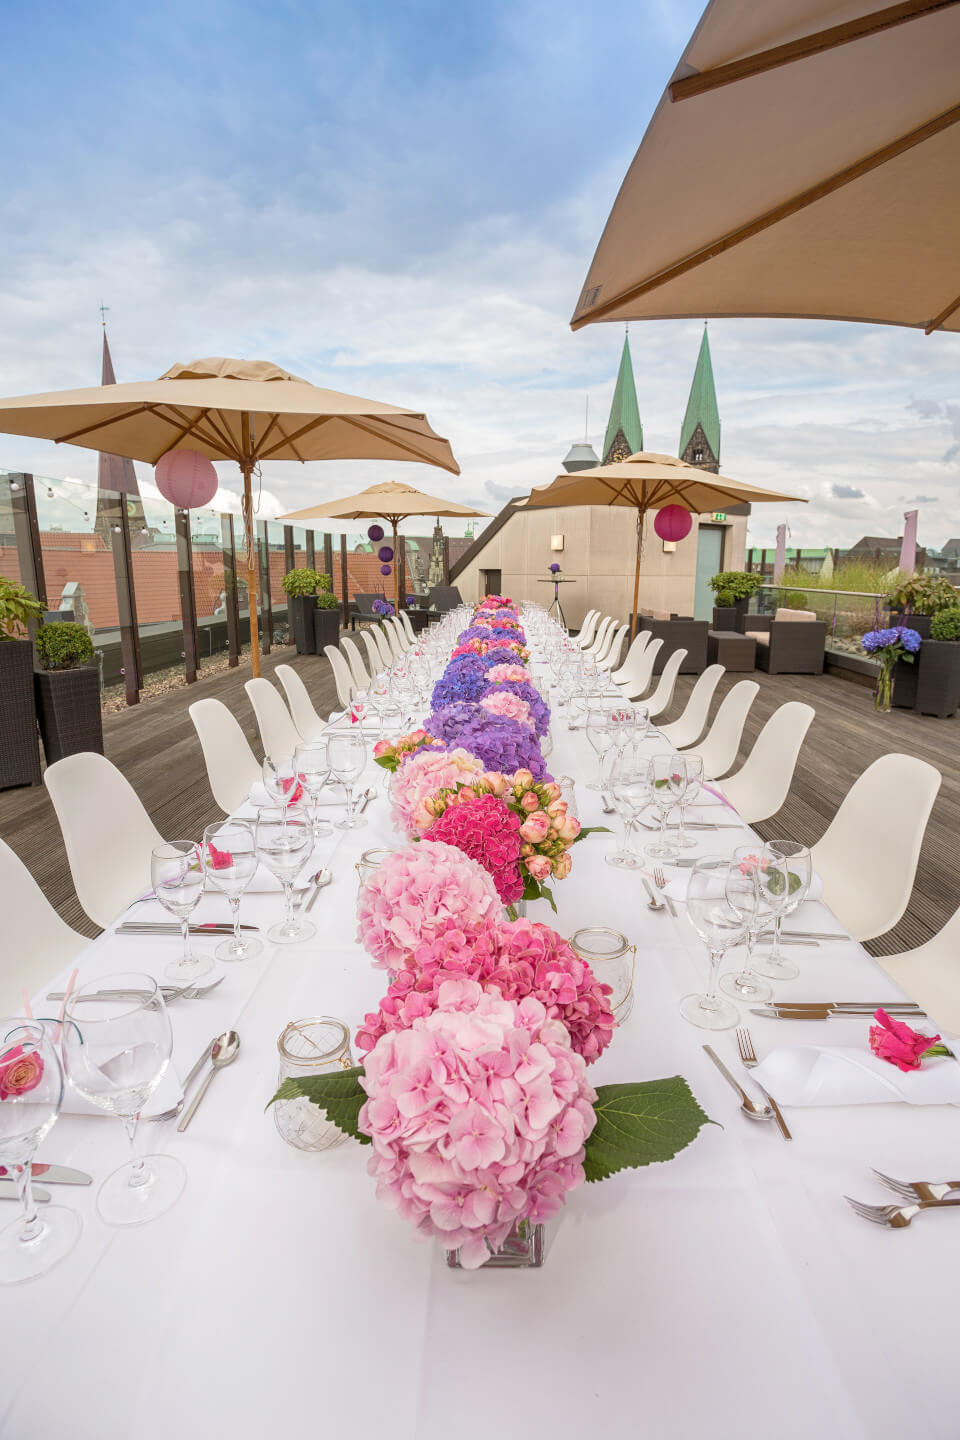 endless wedding table with colorful flowers